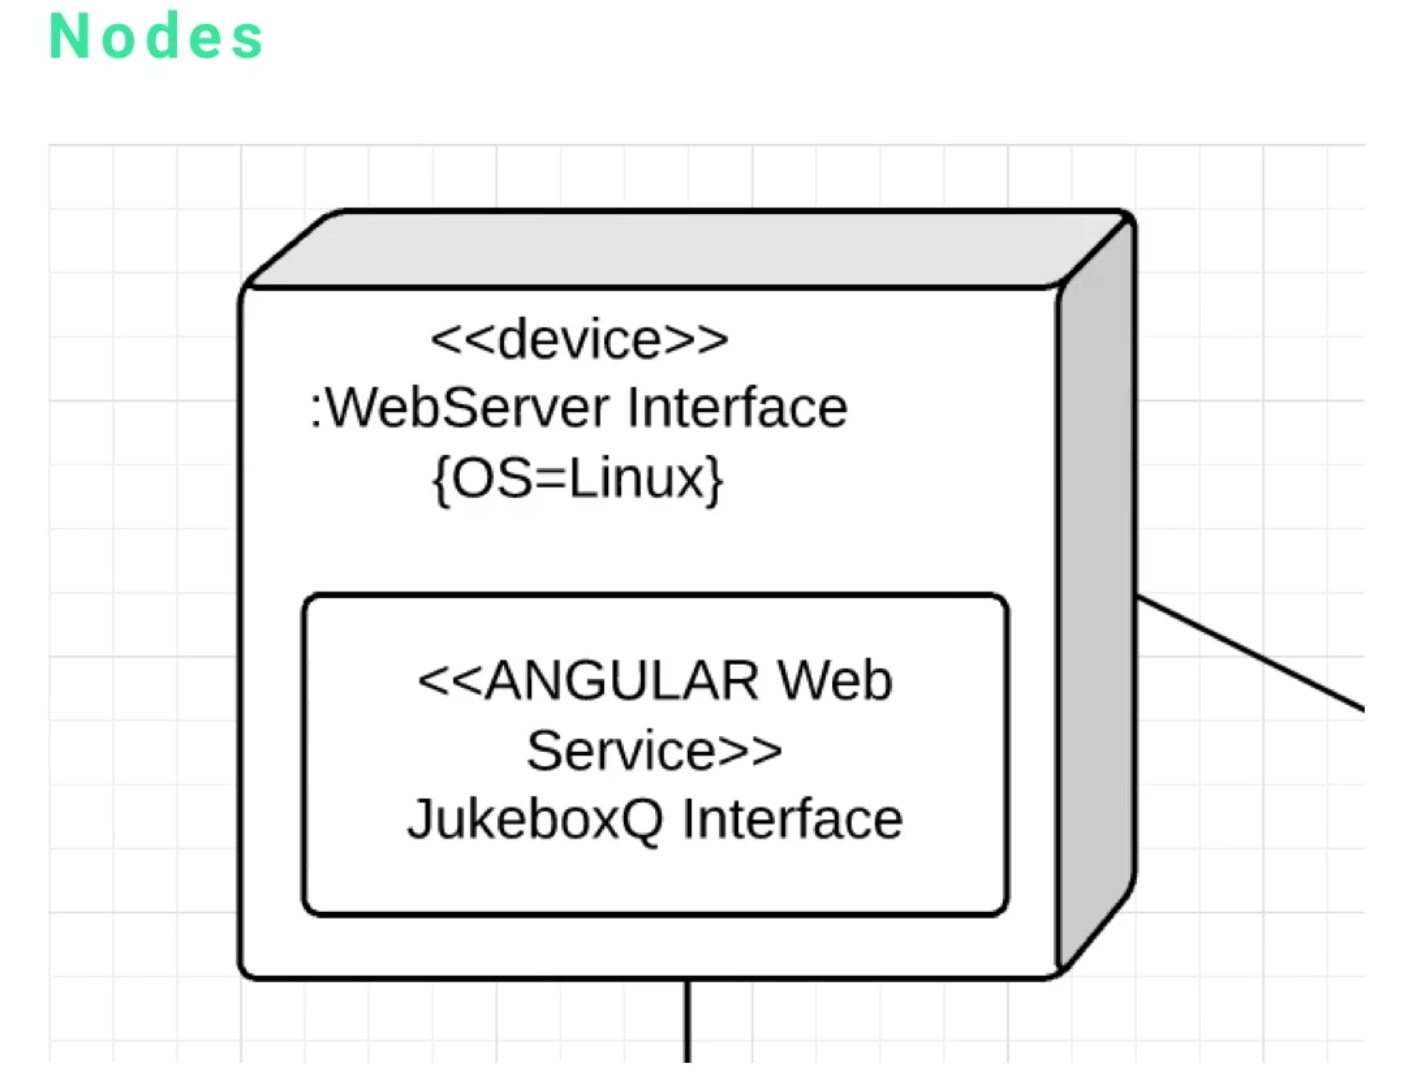 Overview of the Elements of a UML Deployment Diagram